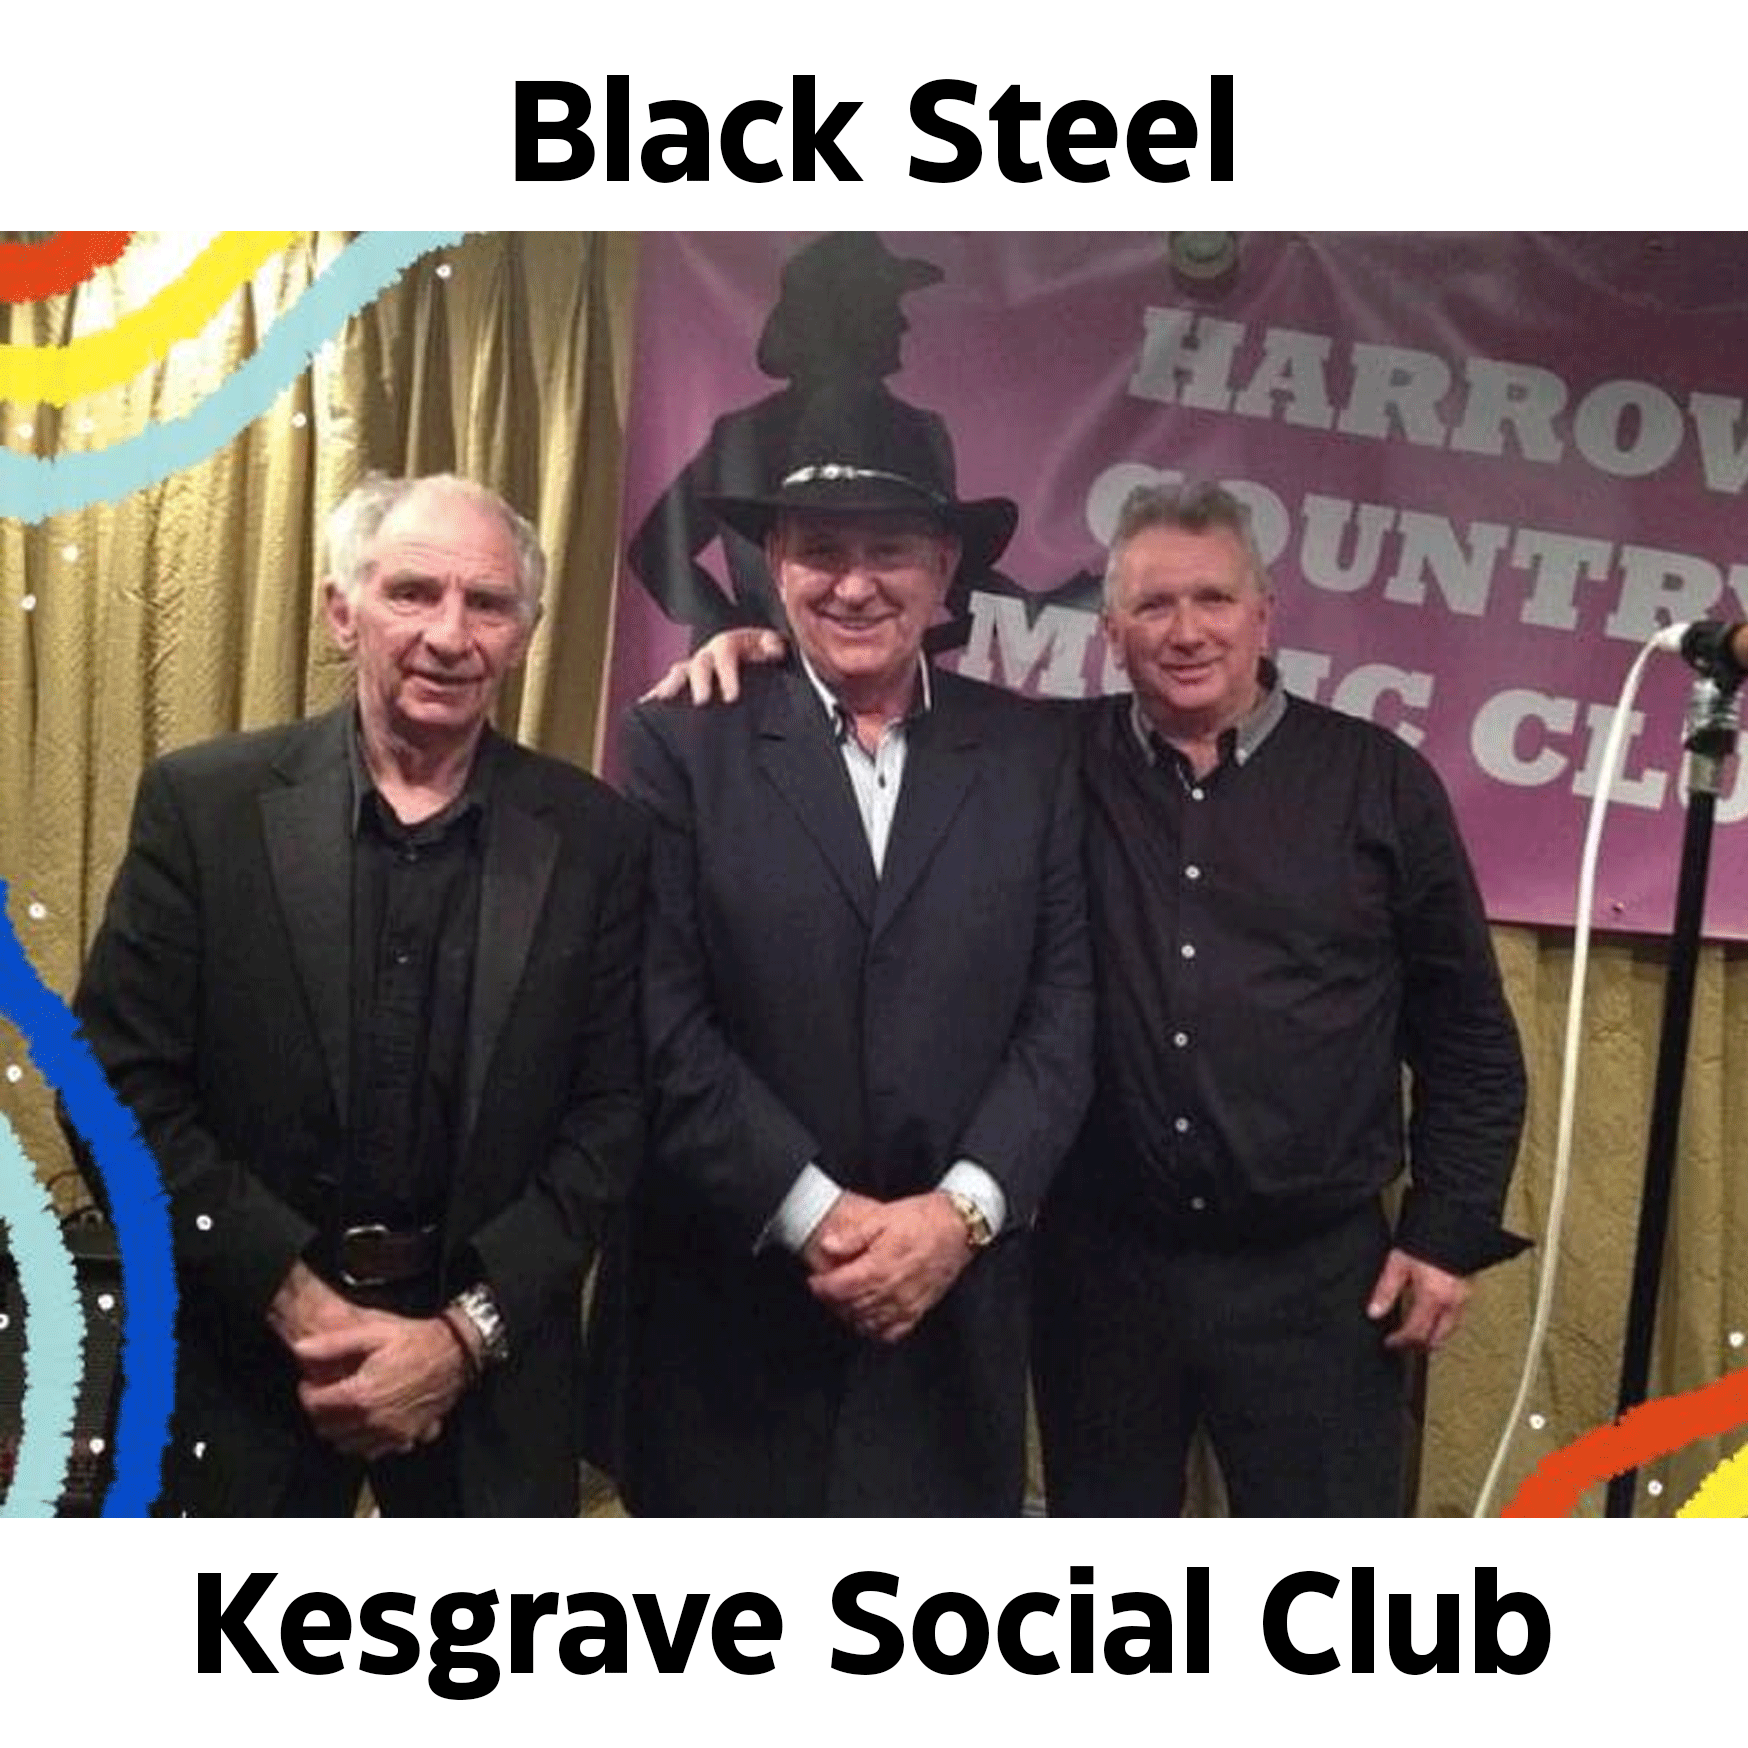 Saturday 14th August – Black Steel Country Music